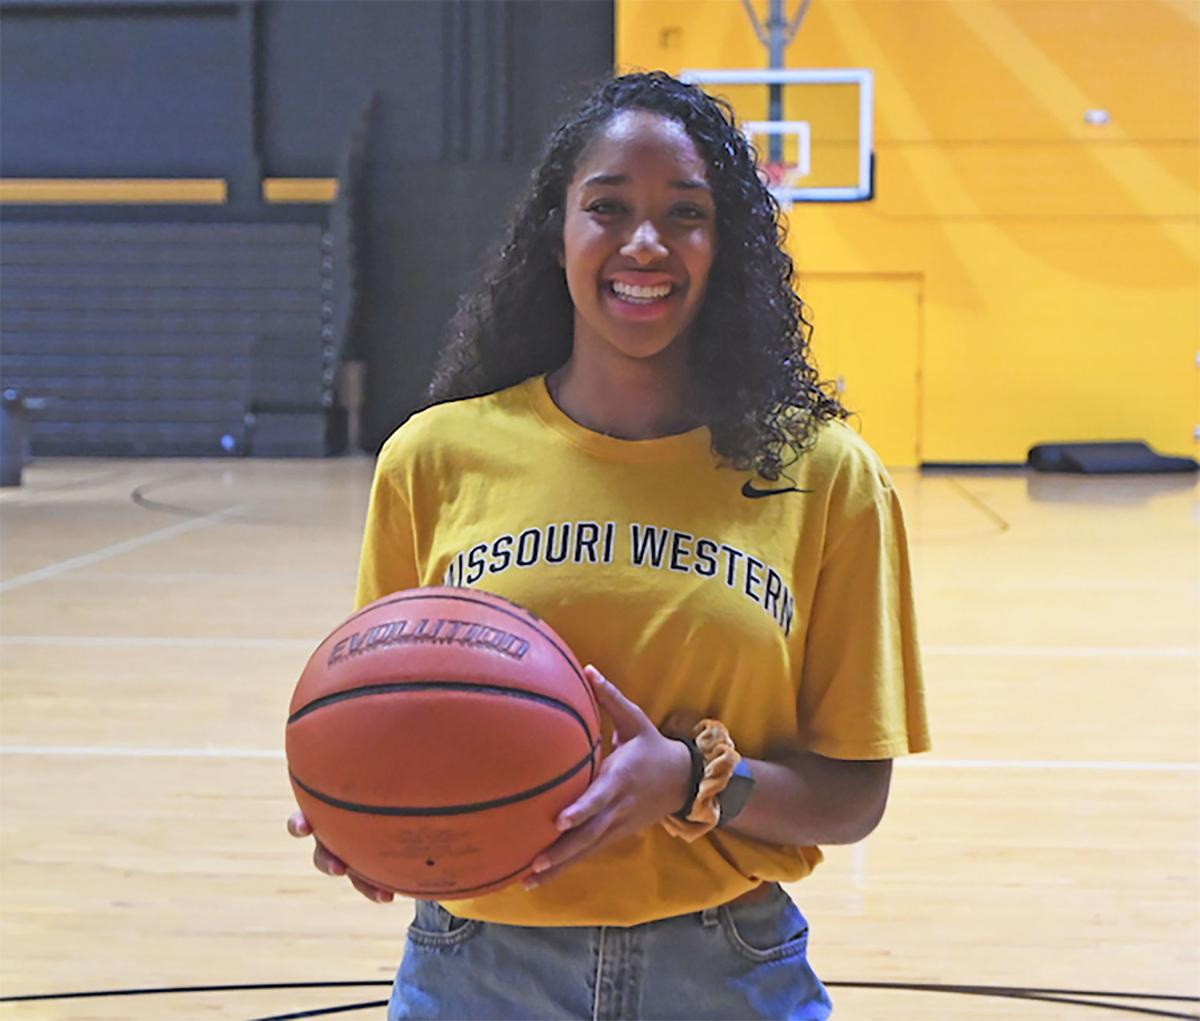 Simone Rodney poses with basketball